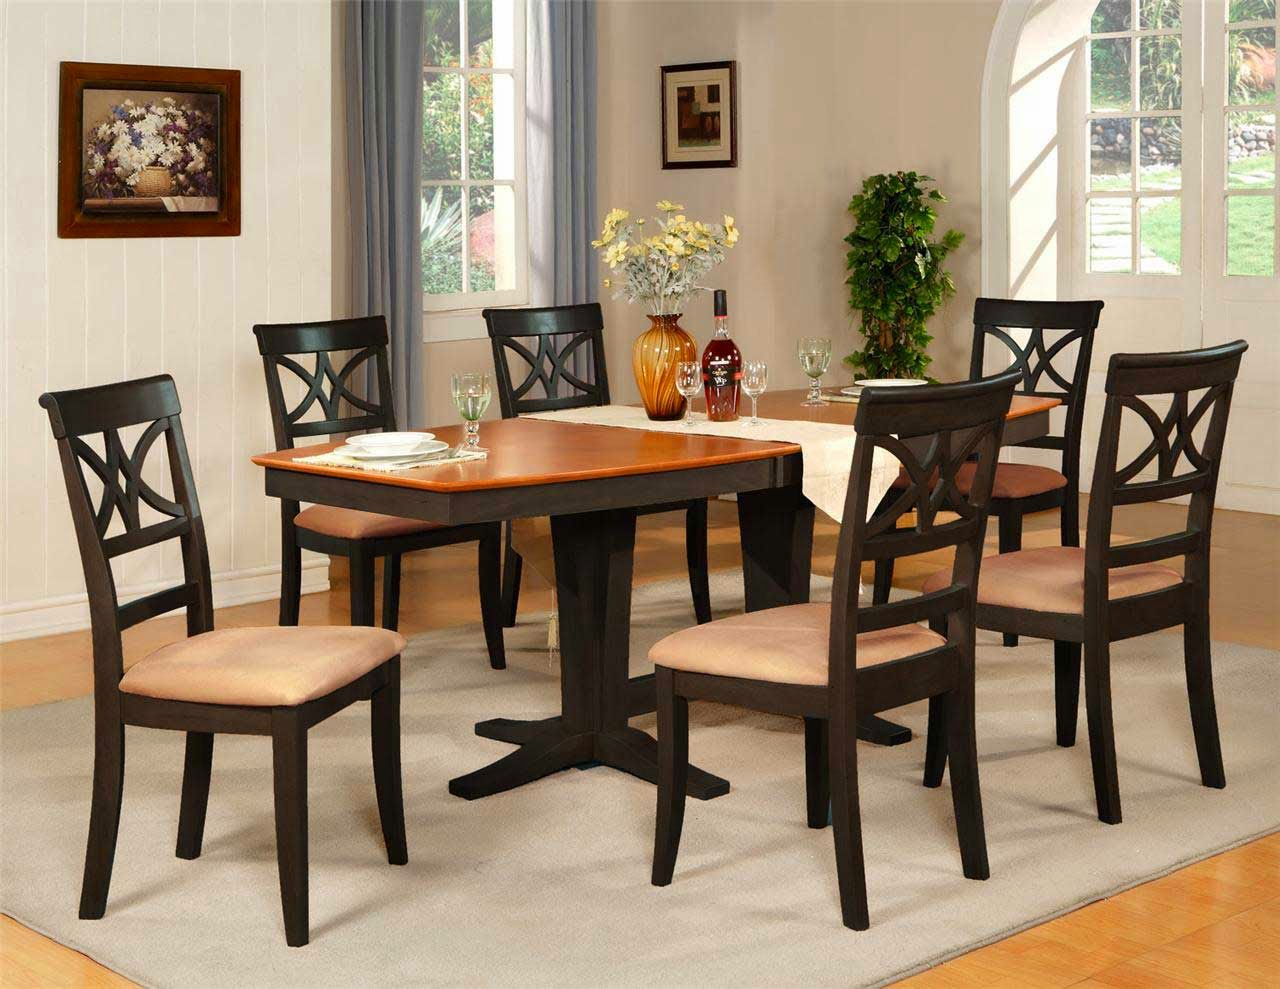 Dining room table centerpiece ideas for Dinette centerpieces